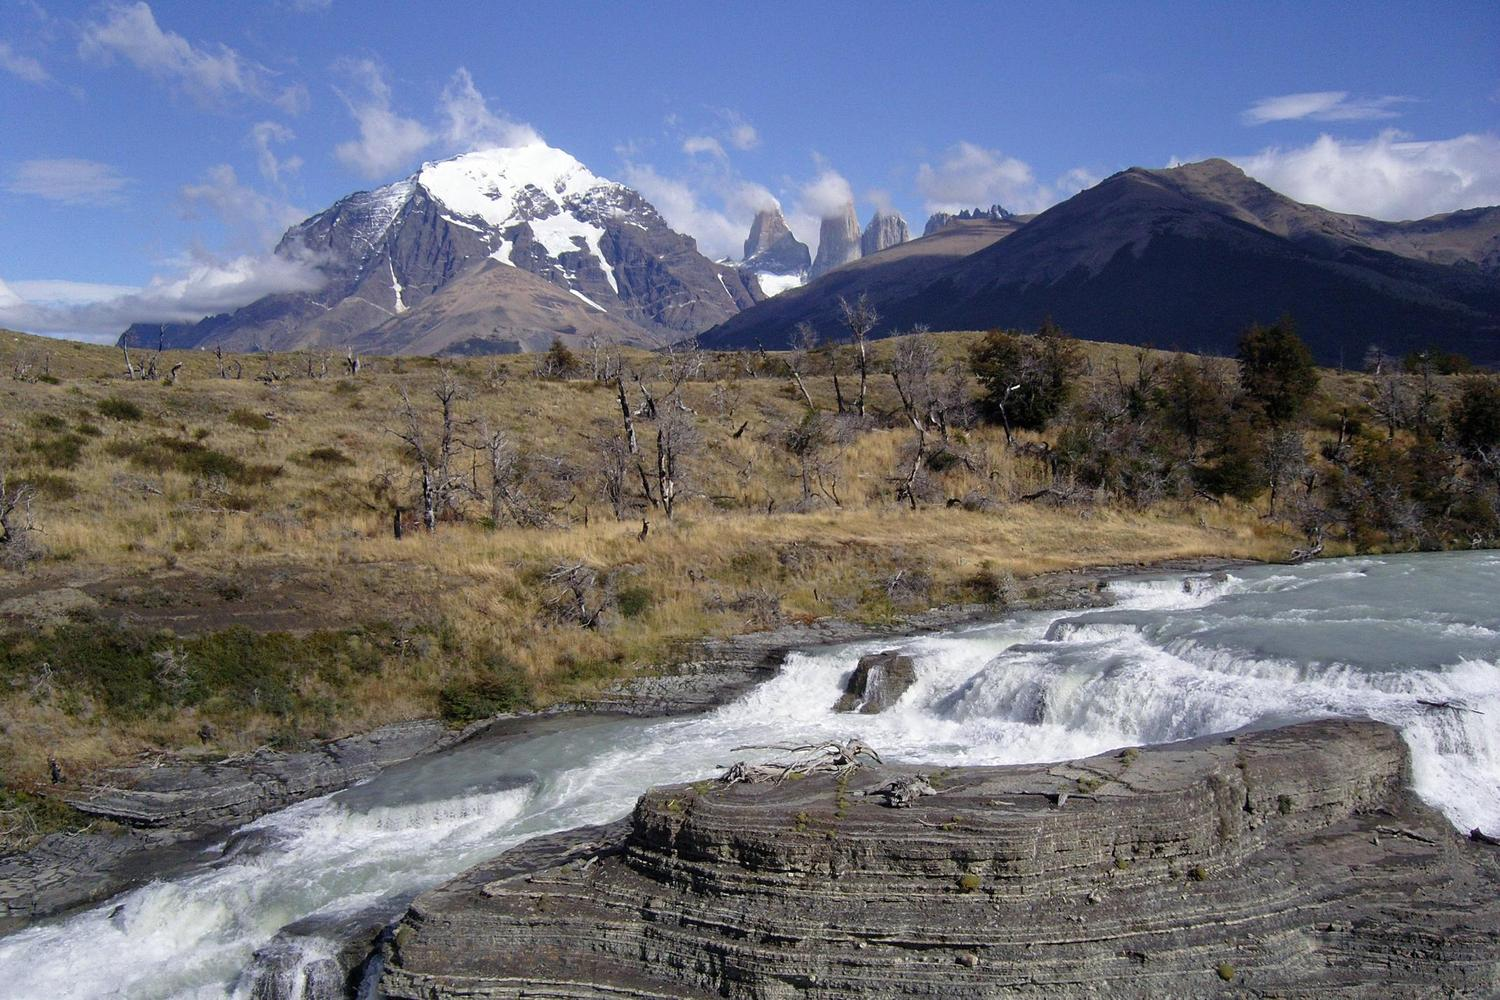 Glacial rivers in the Torres del Paine National Park